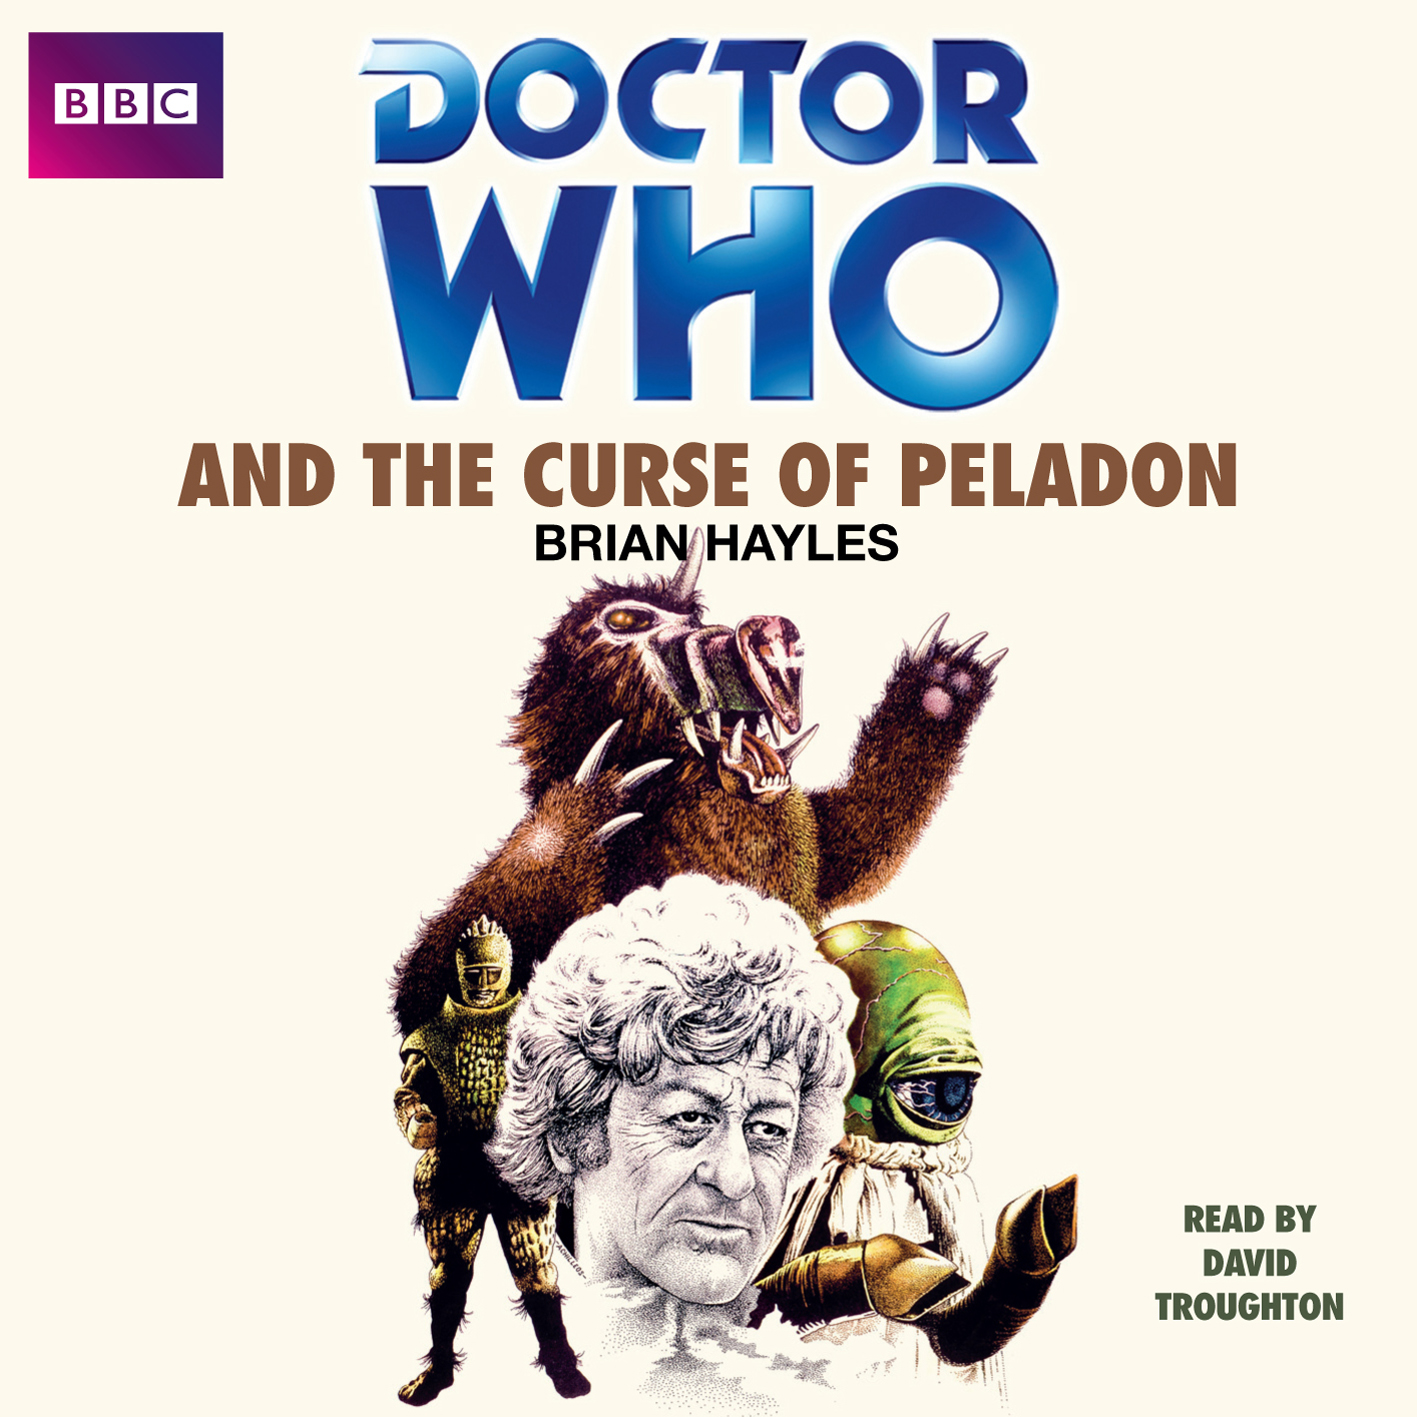 Doctor Who and The Curse of Peladon, read by David Troughton